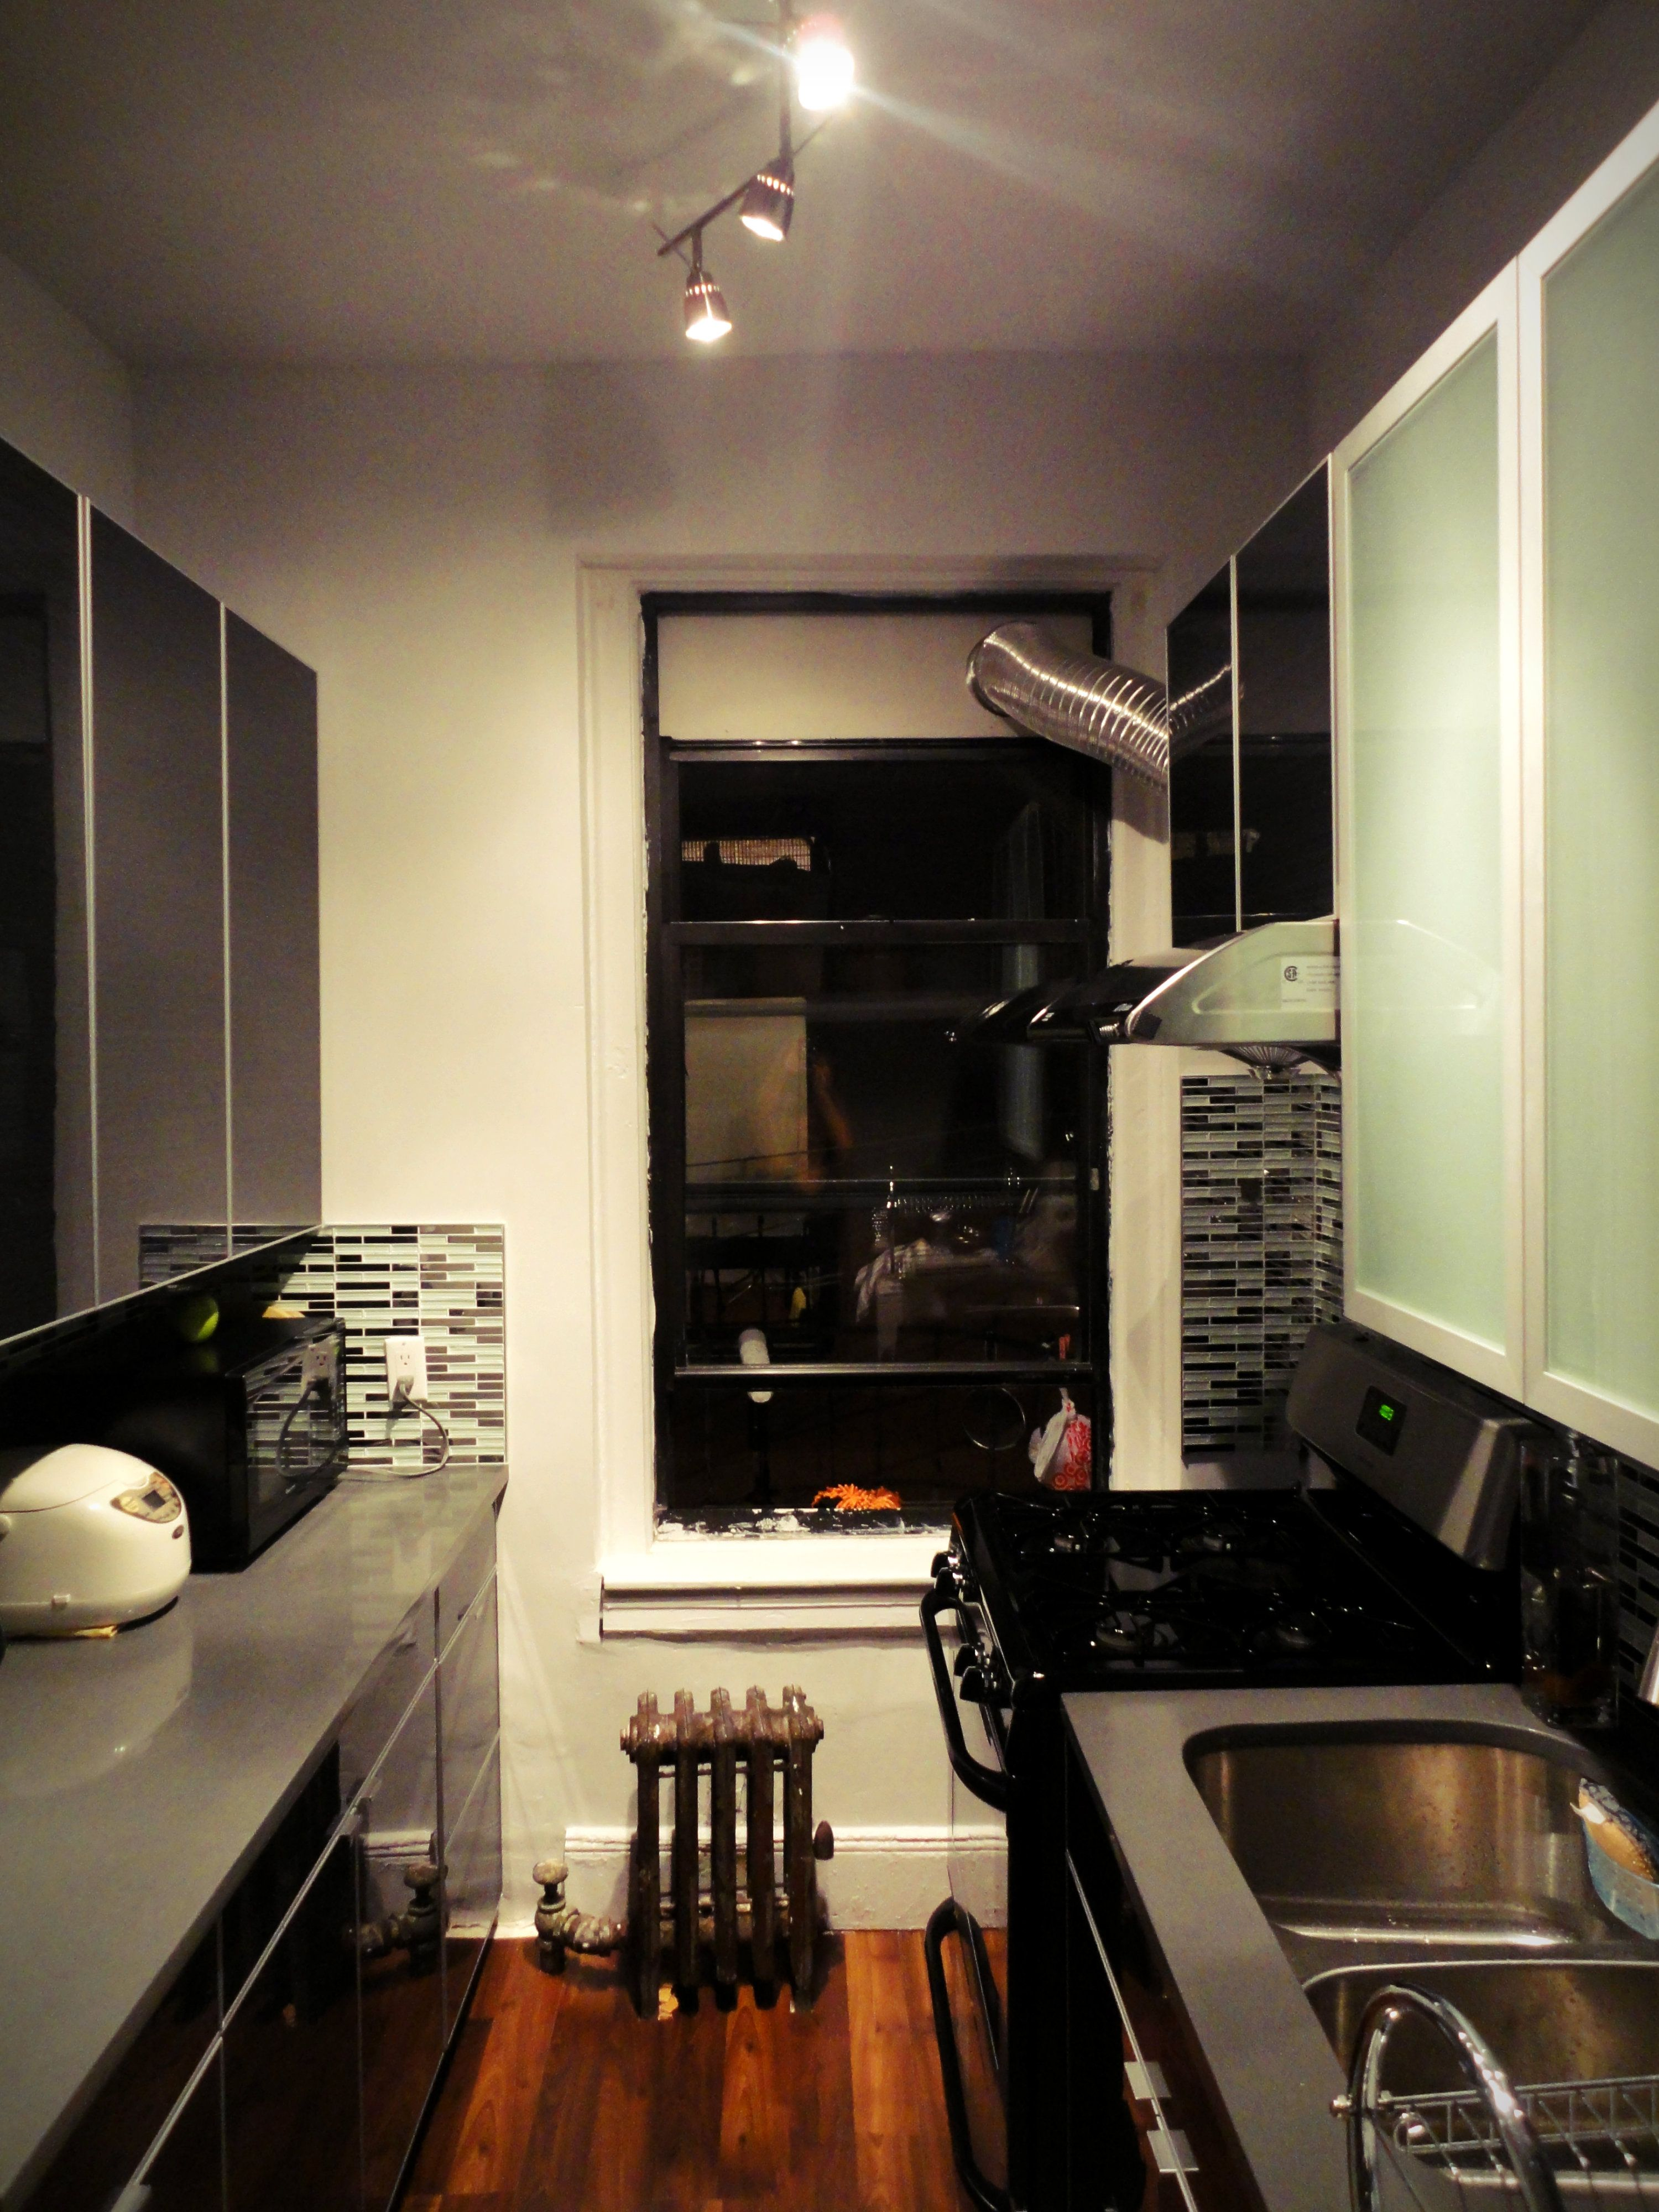 Best Luxurious Kitchen In A Small Nyc Apartment Luxury 640 x 480